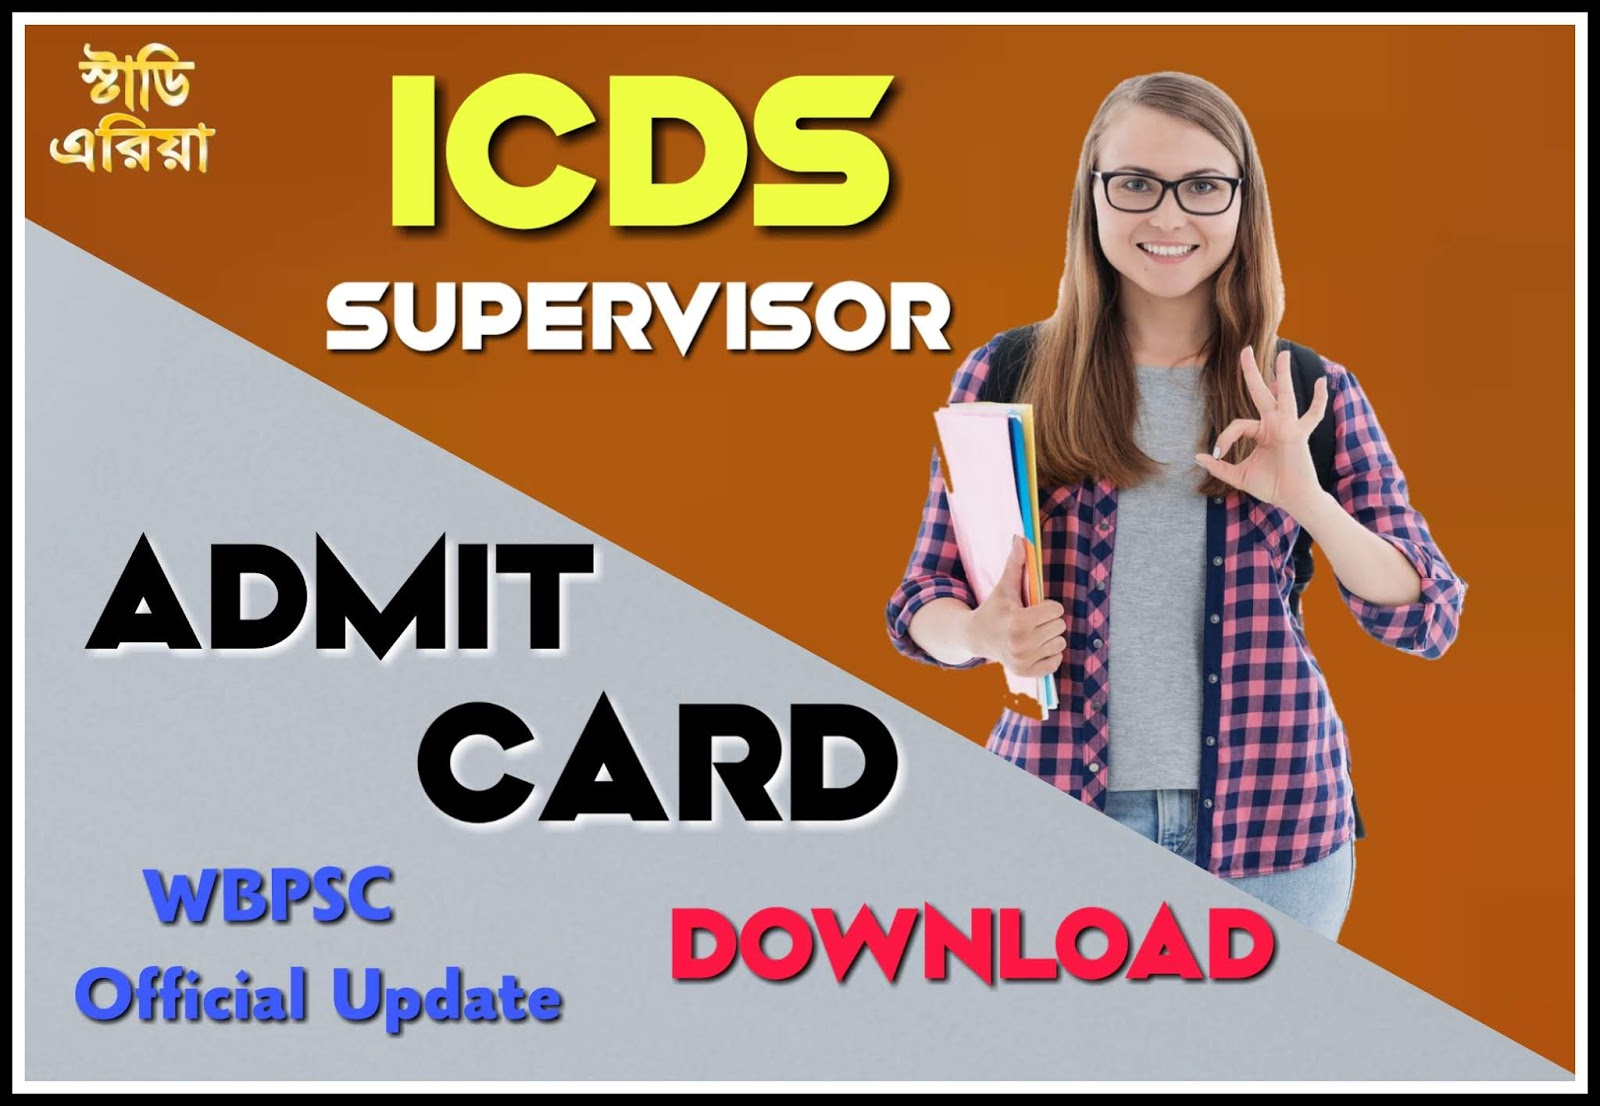 WBPSC ICDS Admit card , Call letter Download